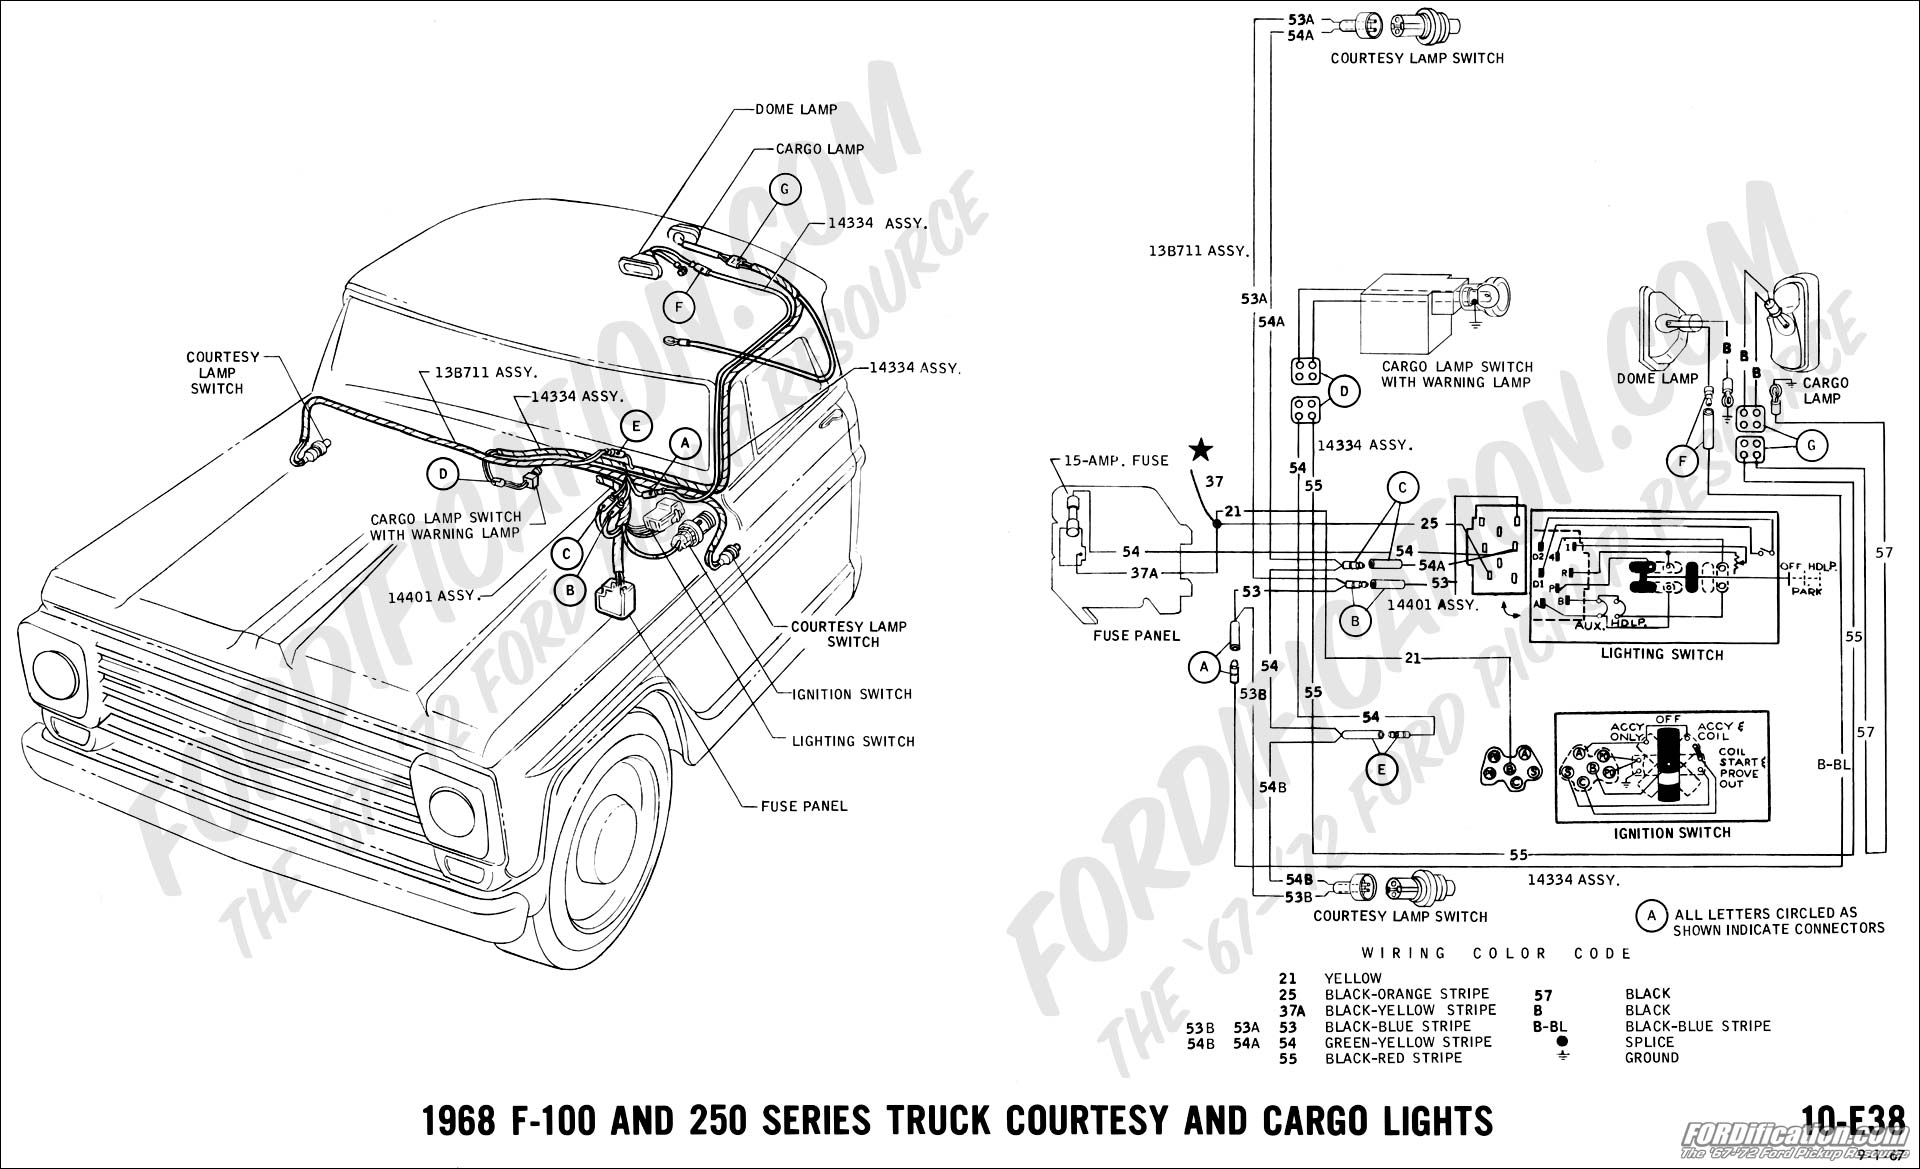 Underhood Wiring Diagrams For Ford F on 1964 ford f100 frame, 1930 ford model a wiring diagram, 1964 ford f100 power steering, 1964 ford f100 fuel gauge, 1964 pontiac gto wiring diagram, 1964 ford f100 brakes, 1964 ford mustang wiring diagram, 1976 chevy corvette wiring diagram, 1964 ford f100 seats, 1964 ford f100 transmission, 1964 ford ignition switch diagram, 1964 ford f100 heater, 79 mustang wiring diagram, 1962 ford fairlane wiring diagram, 1985 ford f-250 wiring diagram, 1964 ford f100 carburetor, ford 6 cylinder engine diagram, 1964 ford f100 wheels, 1964 buick skylark wiring diagram, 1964 ford ranchero wiring-diagram,